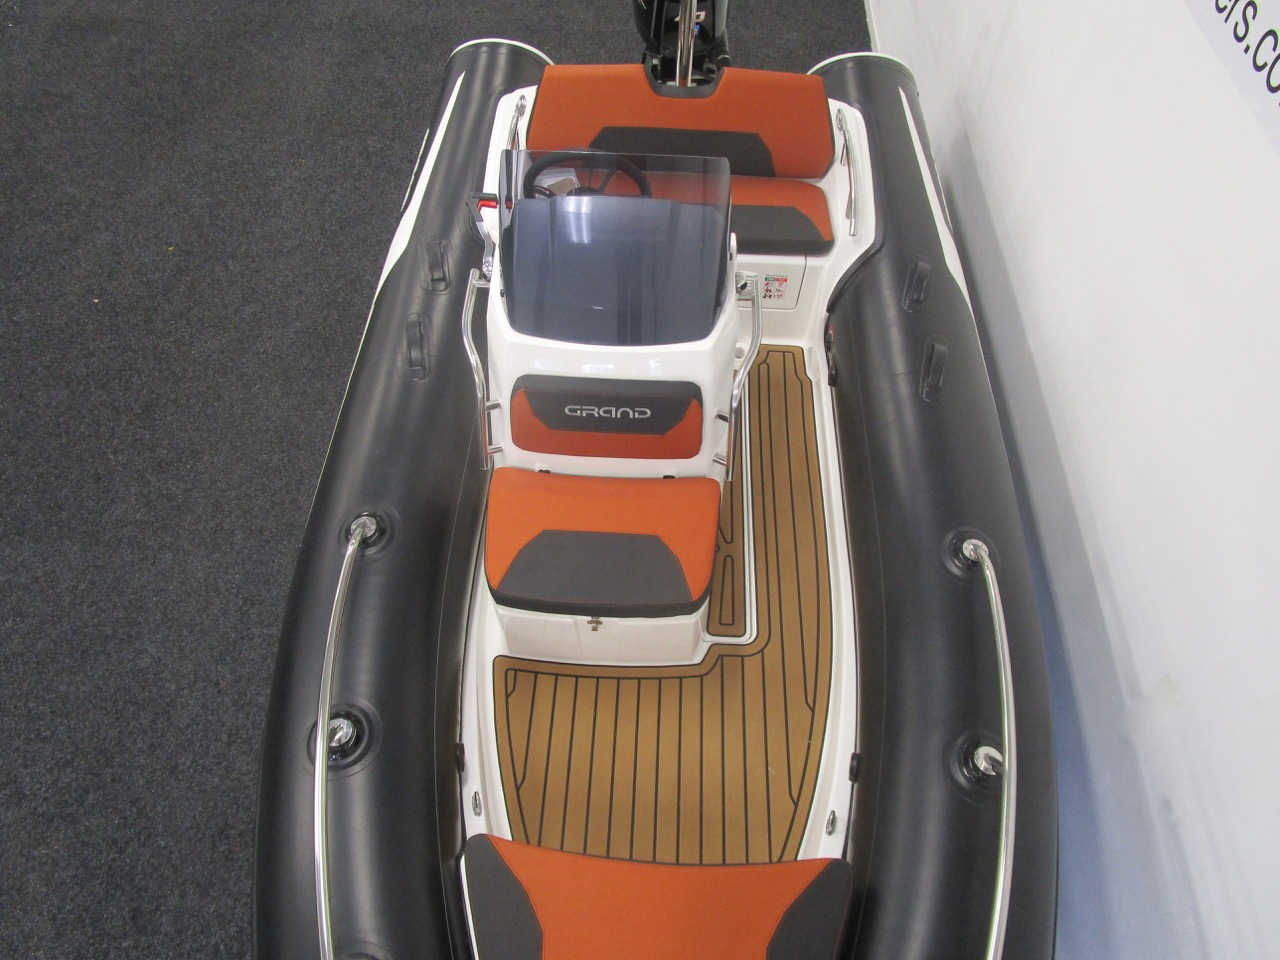 GRAND Golden Line G420 RIB huge deck space and wide side decks